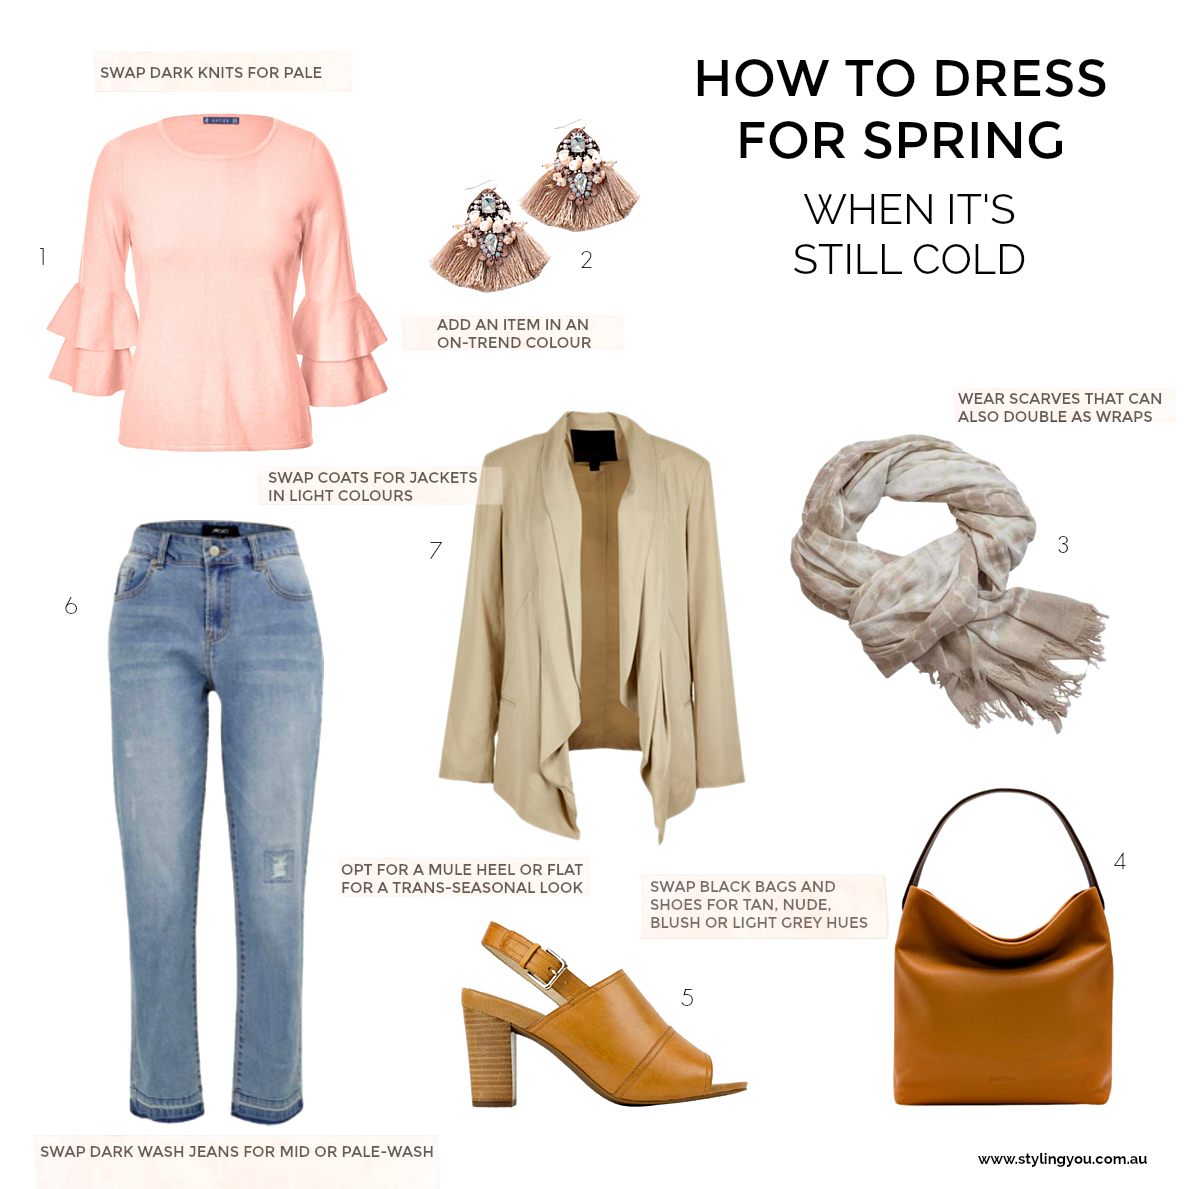 15 tips for dressing in spring when it's still cold | Styling You